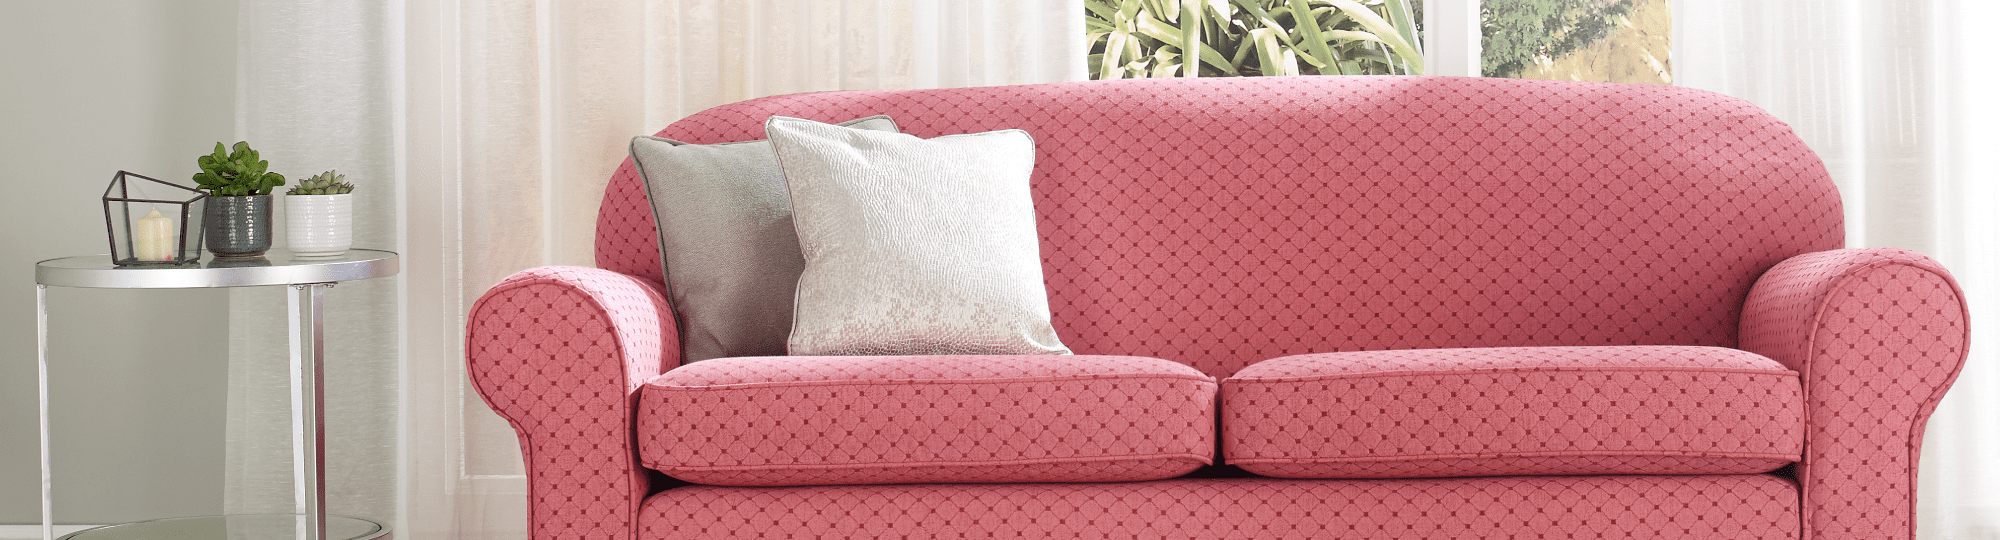 Chesterfield Sofa Covers